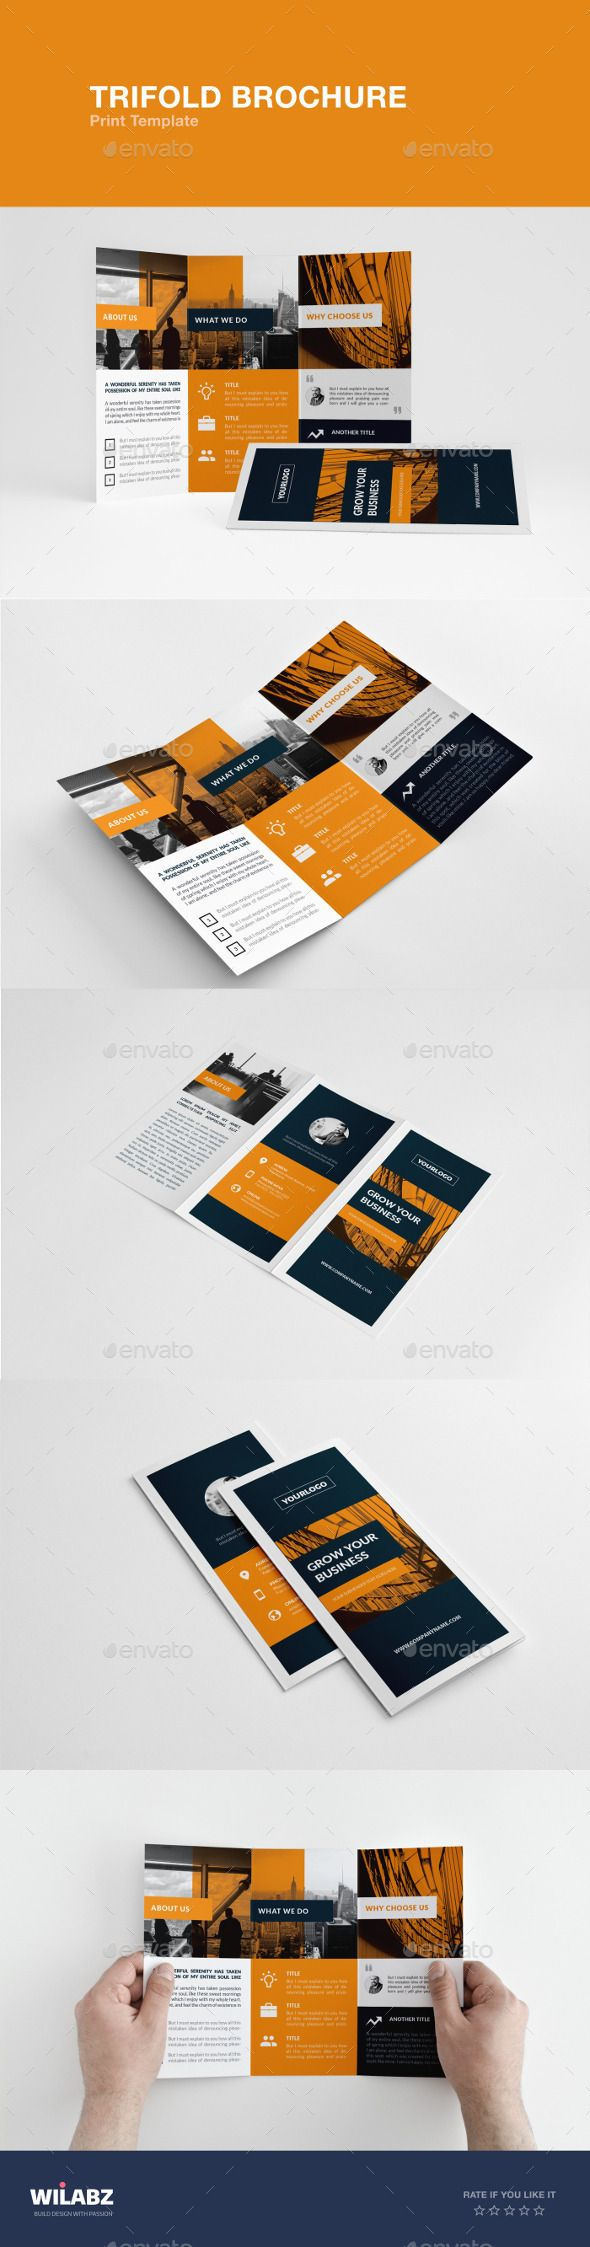 Fresh and Clean TriFold Brochure, easy to customize and looks elegant • Available here → http://graphicriver.net/item/trifold-brochure/12803790?s_rank=174&ref=pxcr